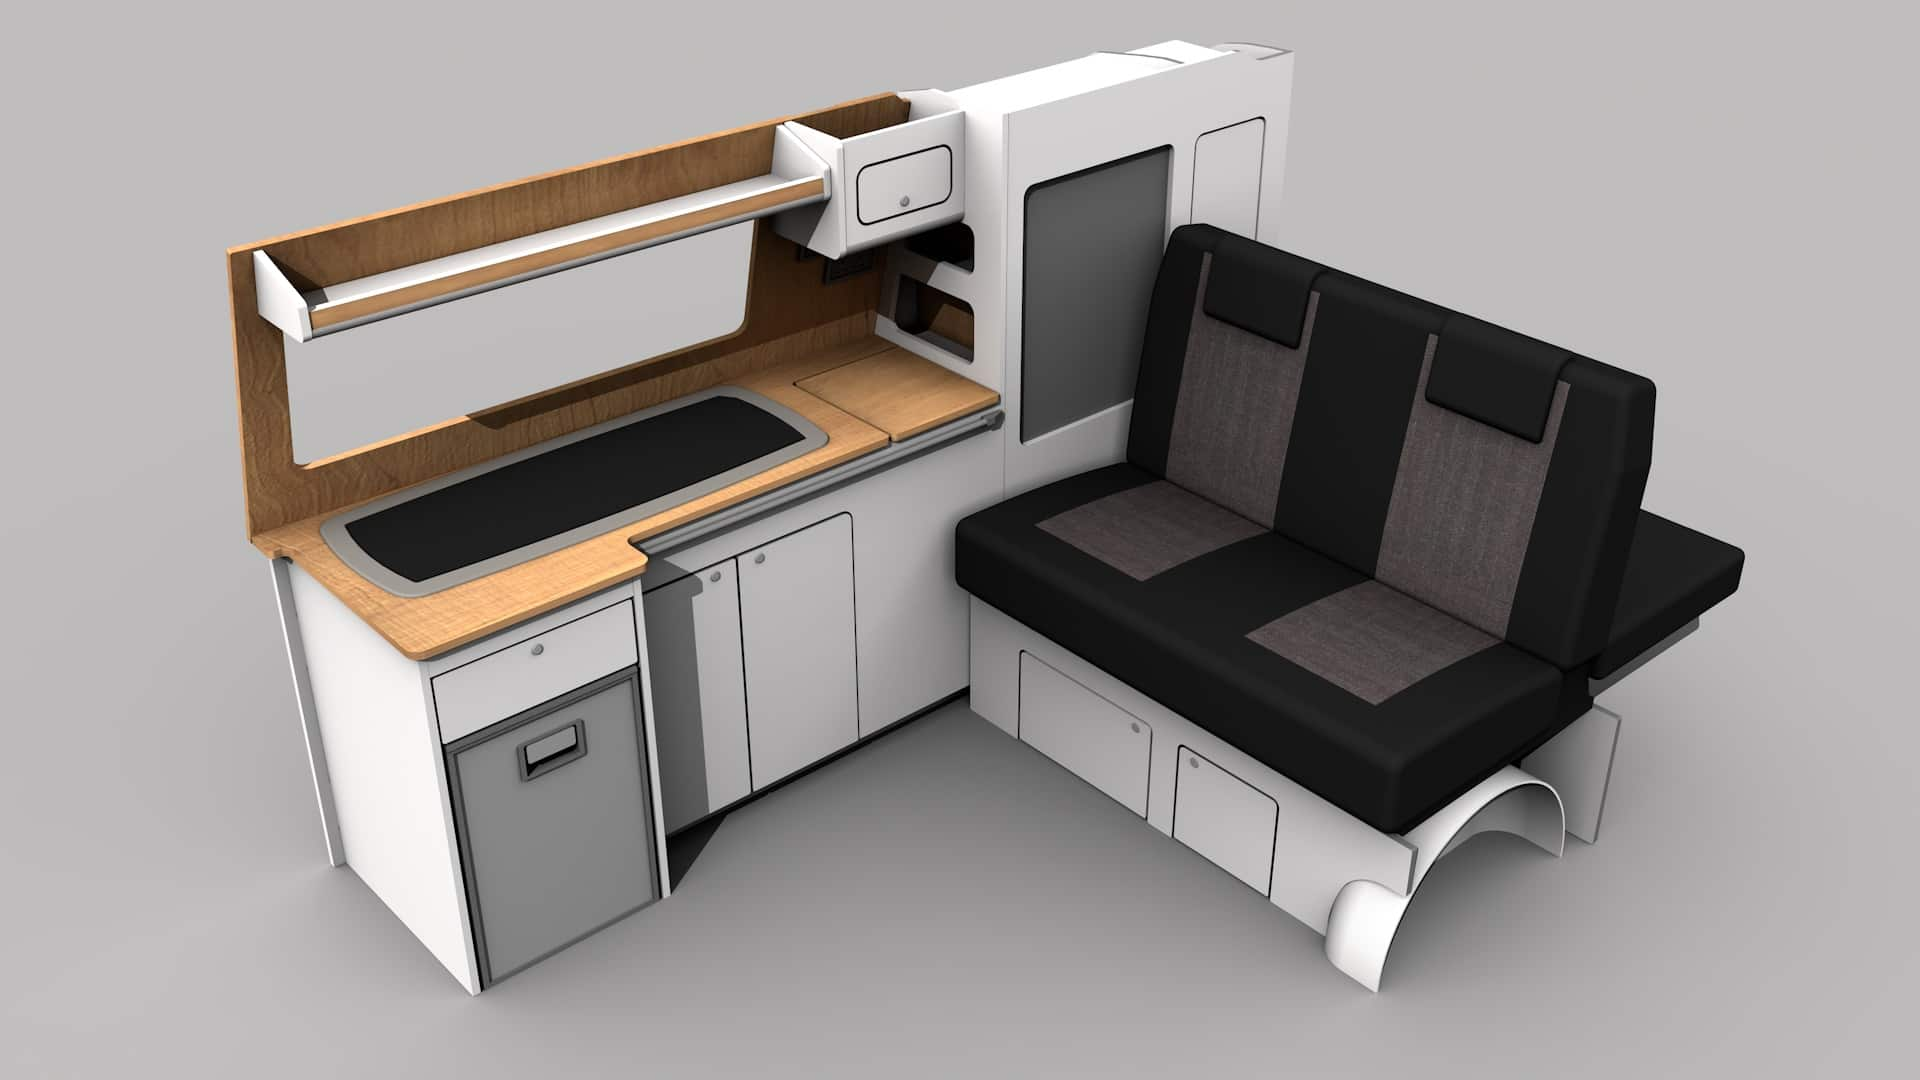 A campervan conversion called the drifter by Taylored Campervan Conversions